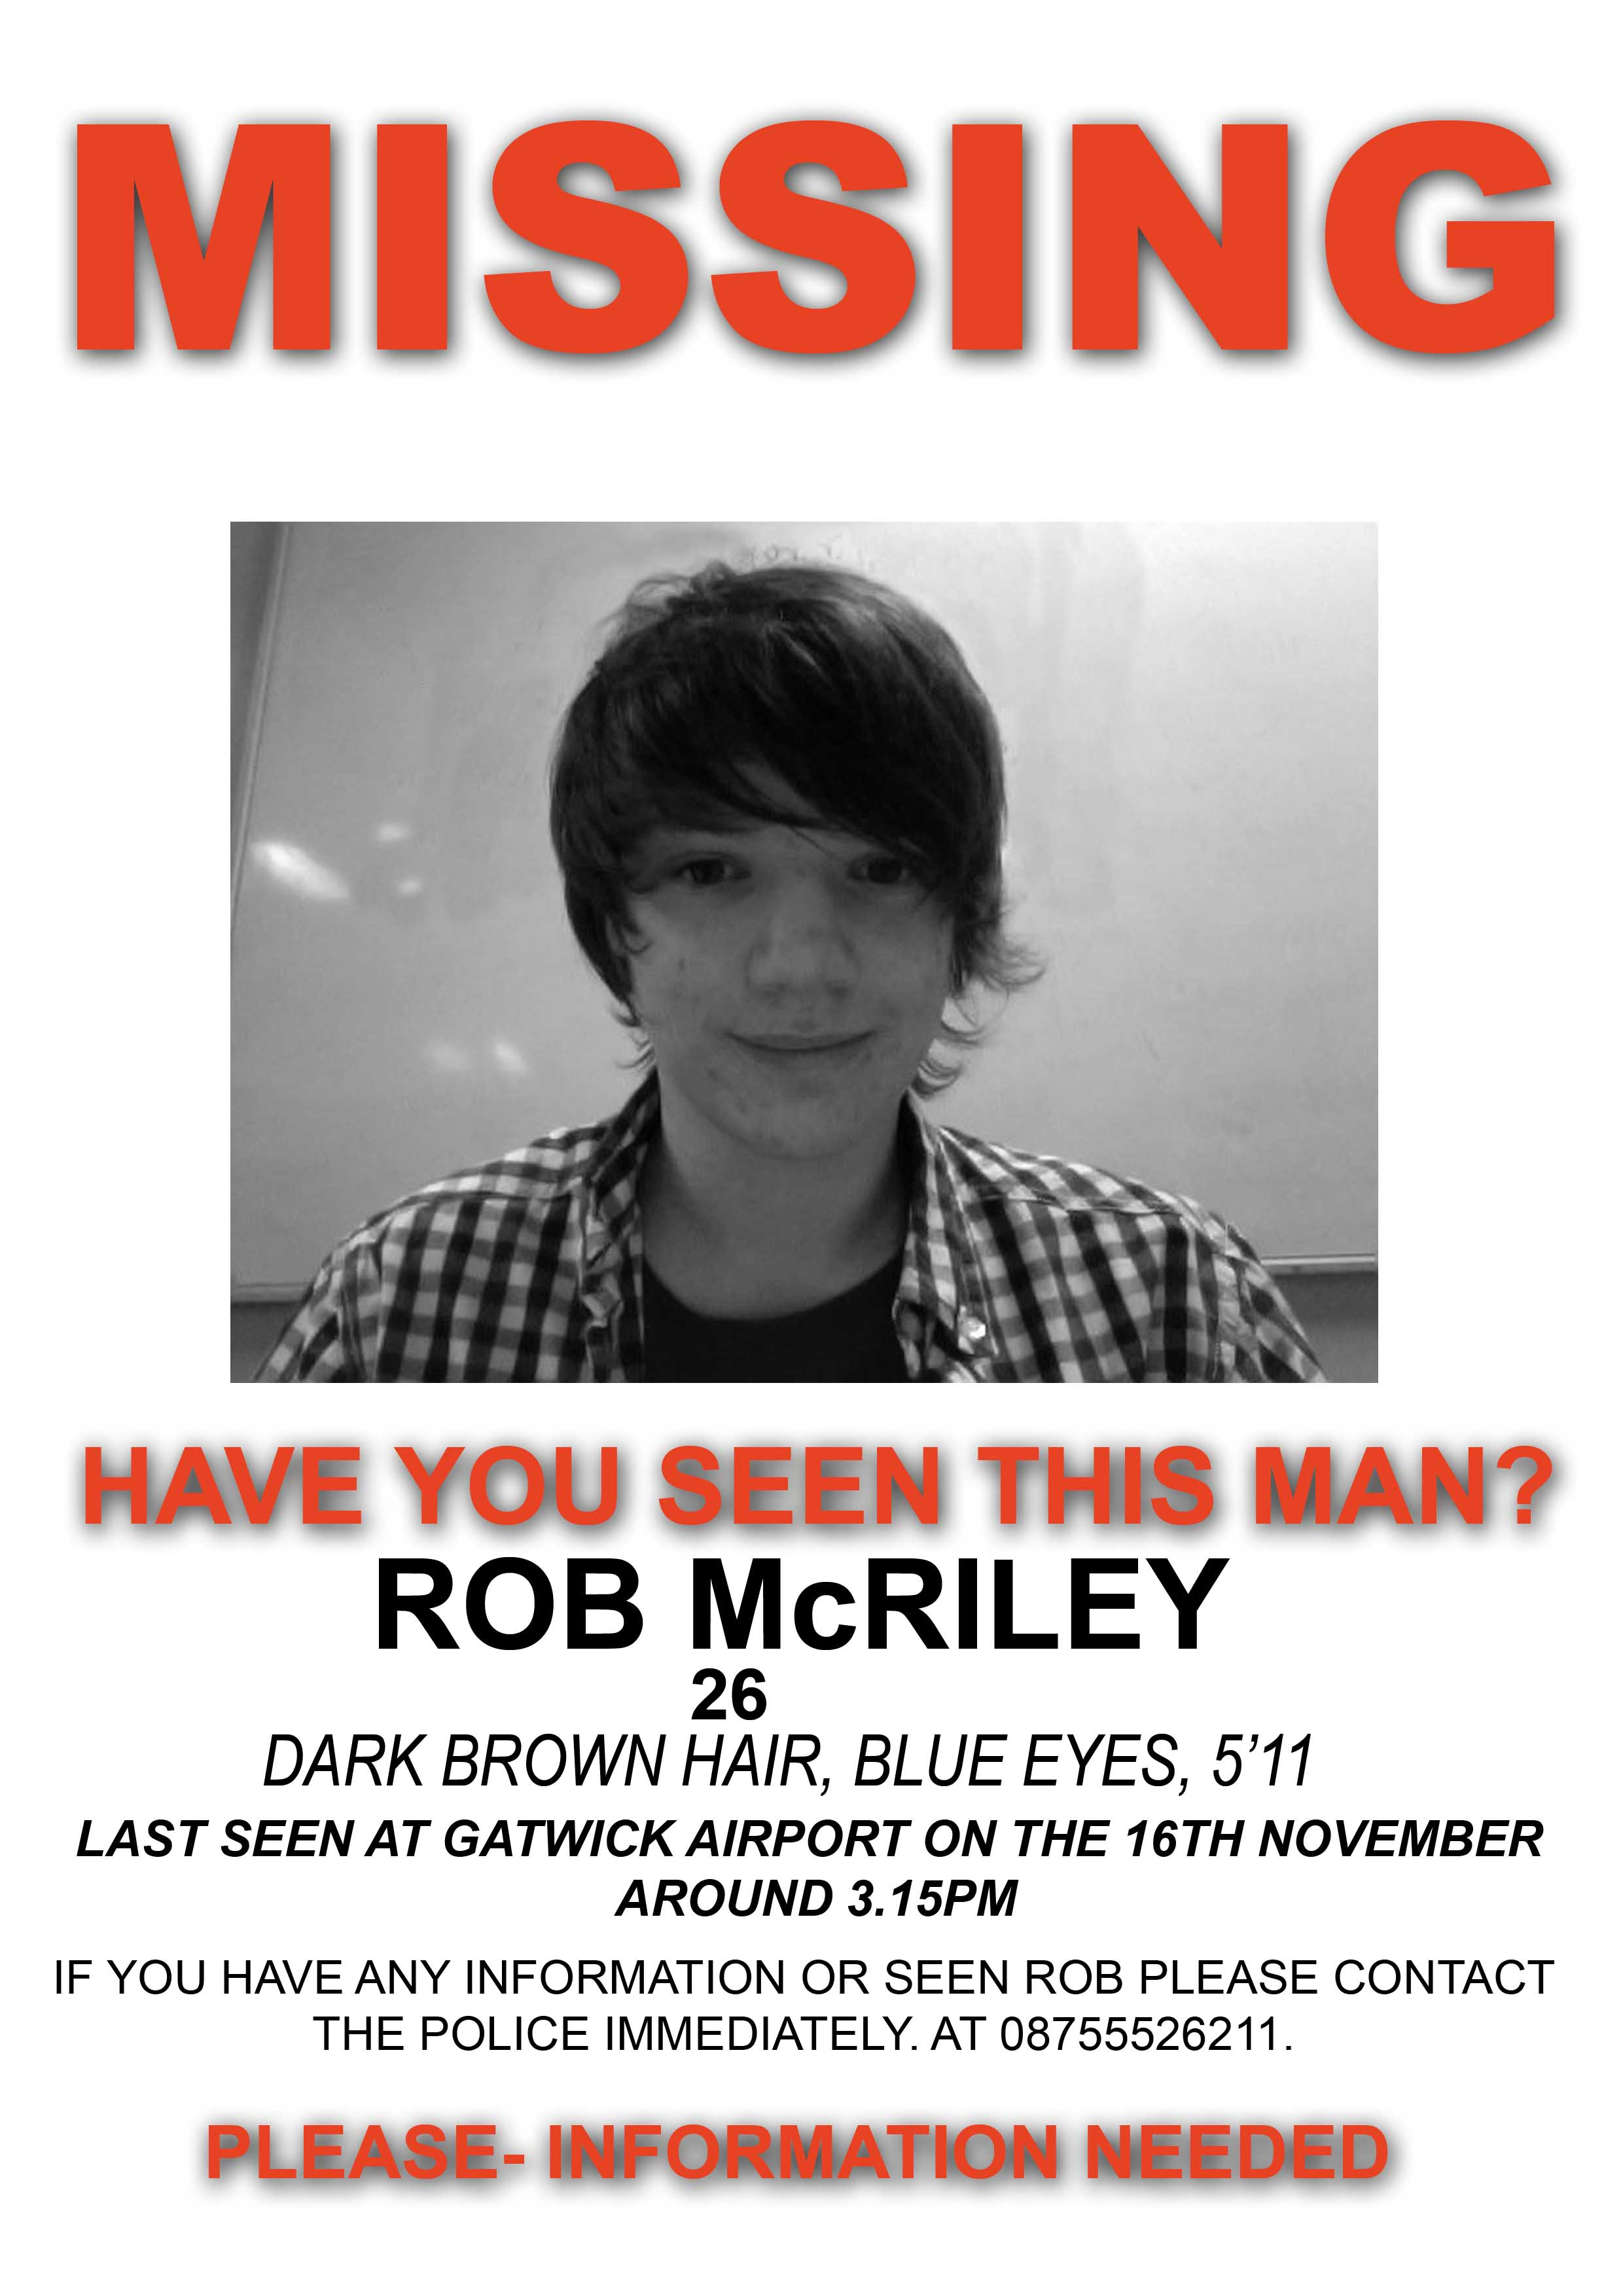 missing persons poster template – Missing Person Poster